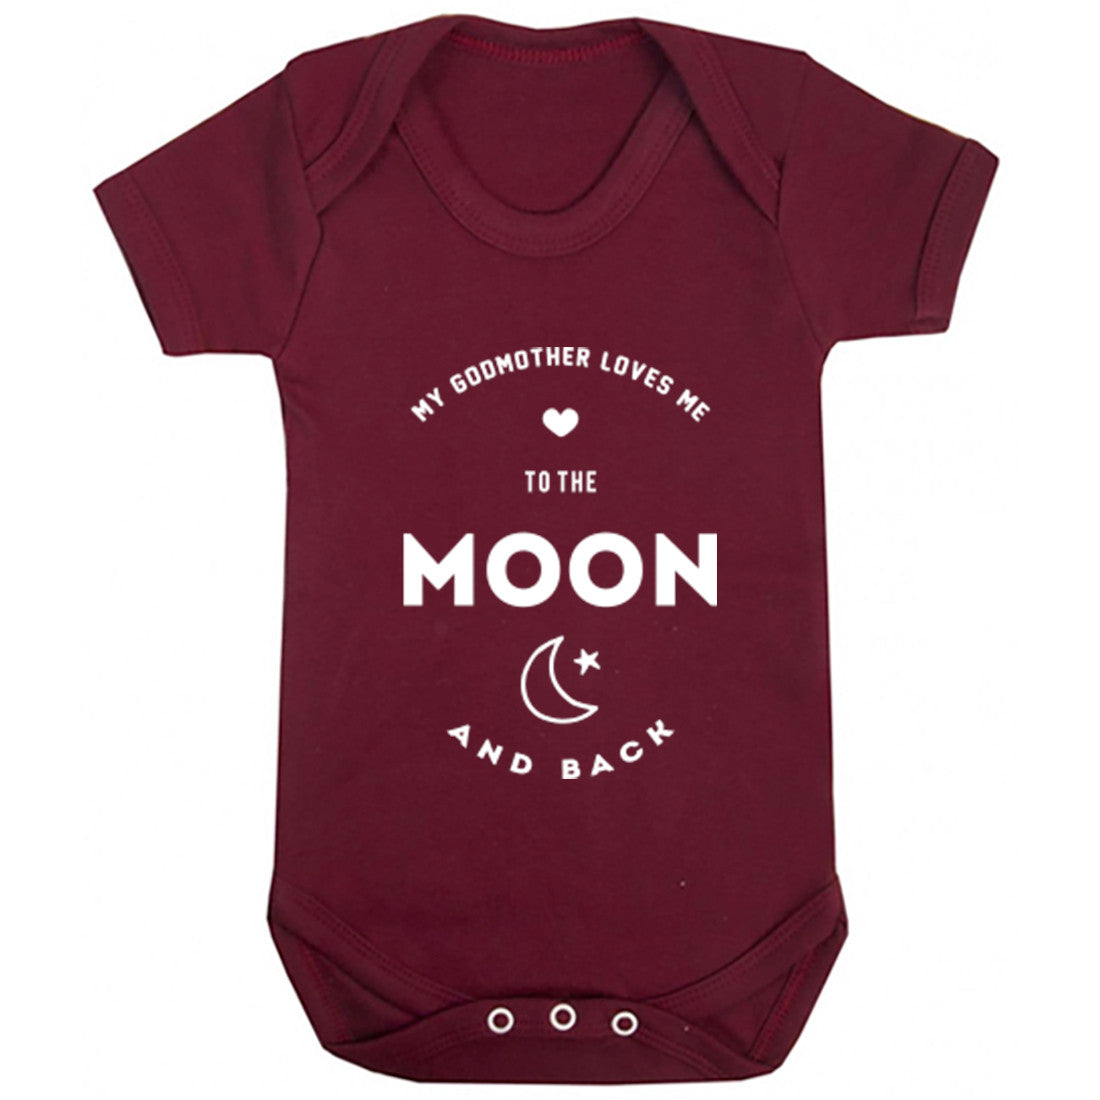 My Godmother Loves Me To The Moon And Back Baby Vest K1547 - Illustrated Identity Ltd.